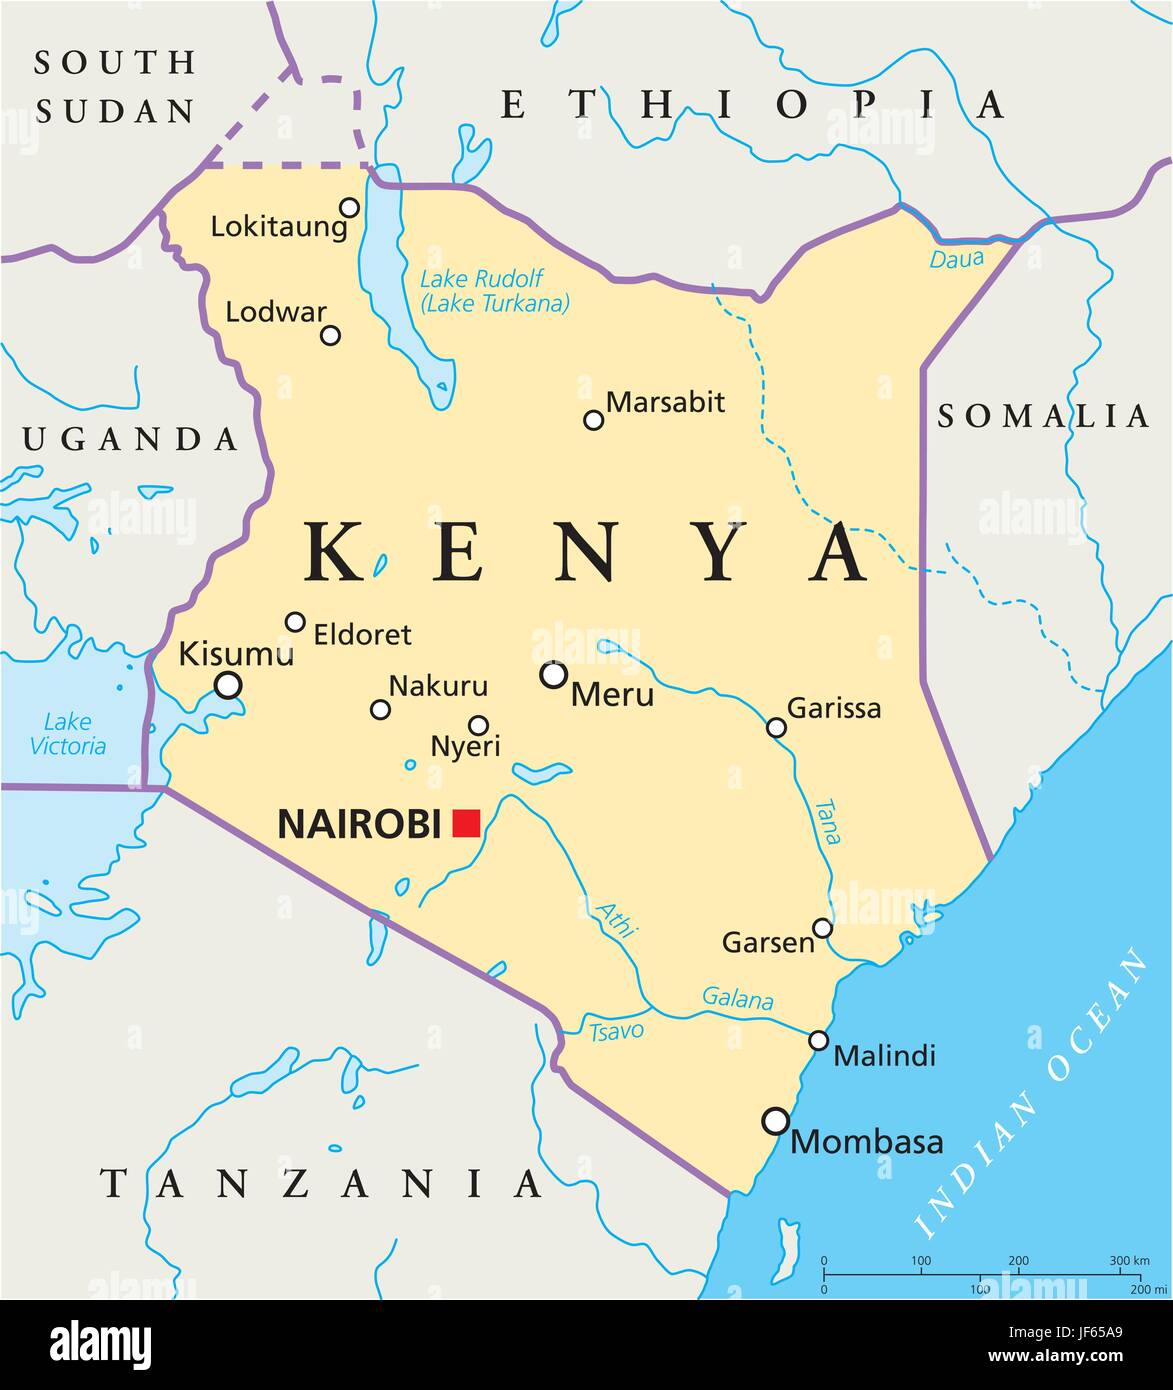 Kenya Map Stock Photos & Kenya Map Stock Images - Alamy